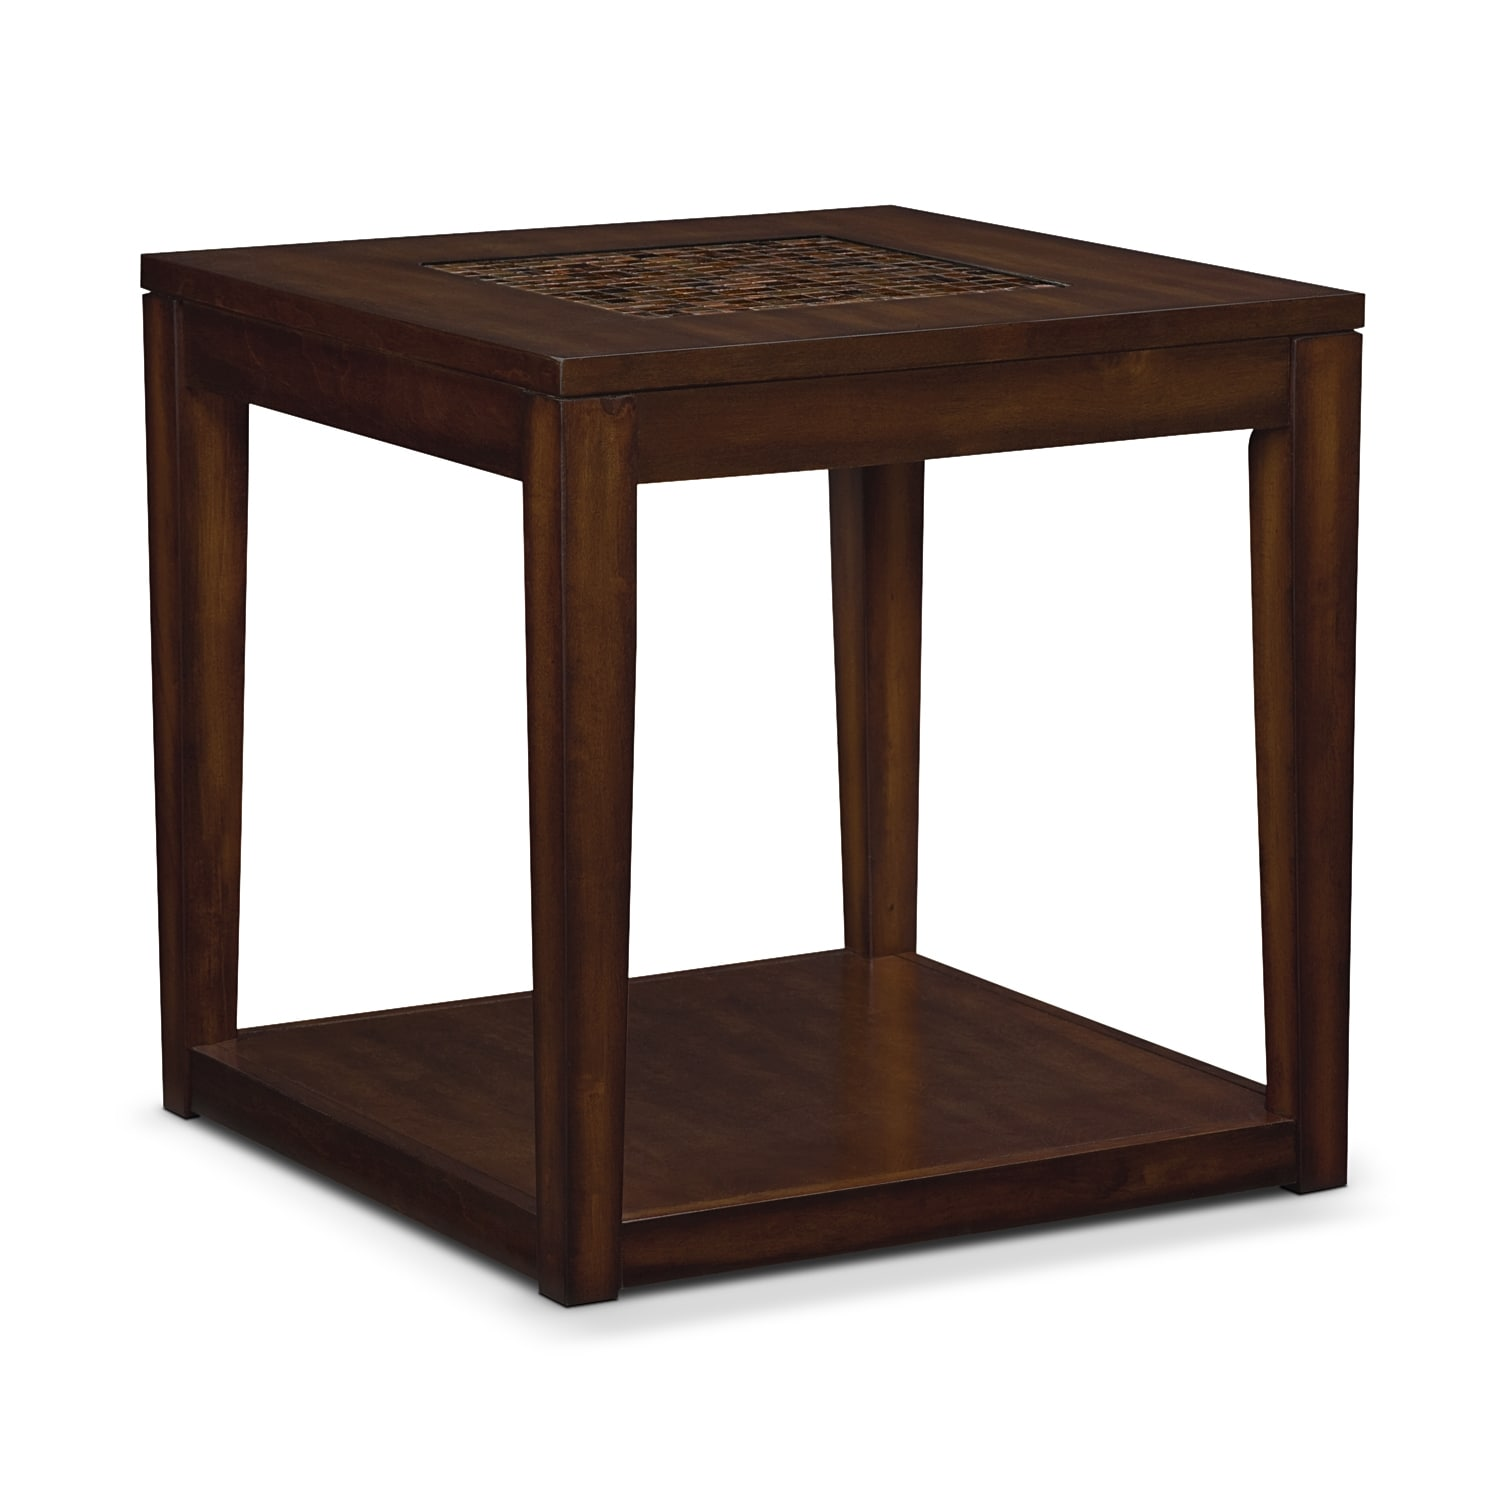 Carson End Table - Brown